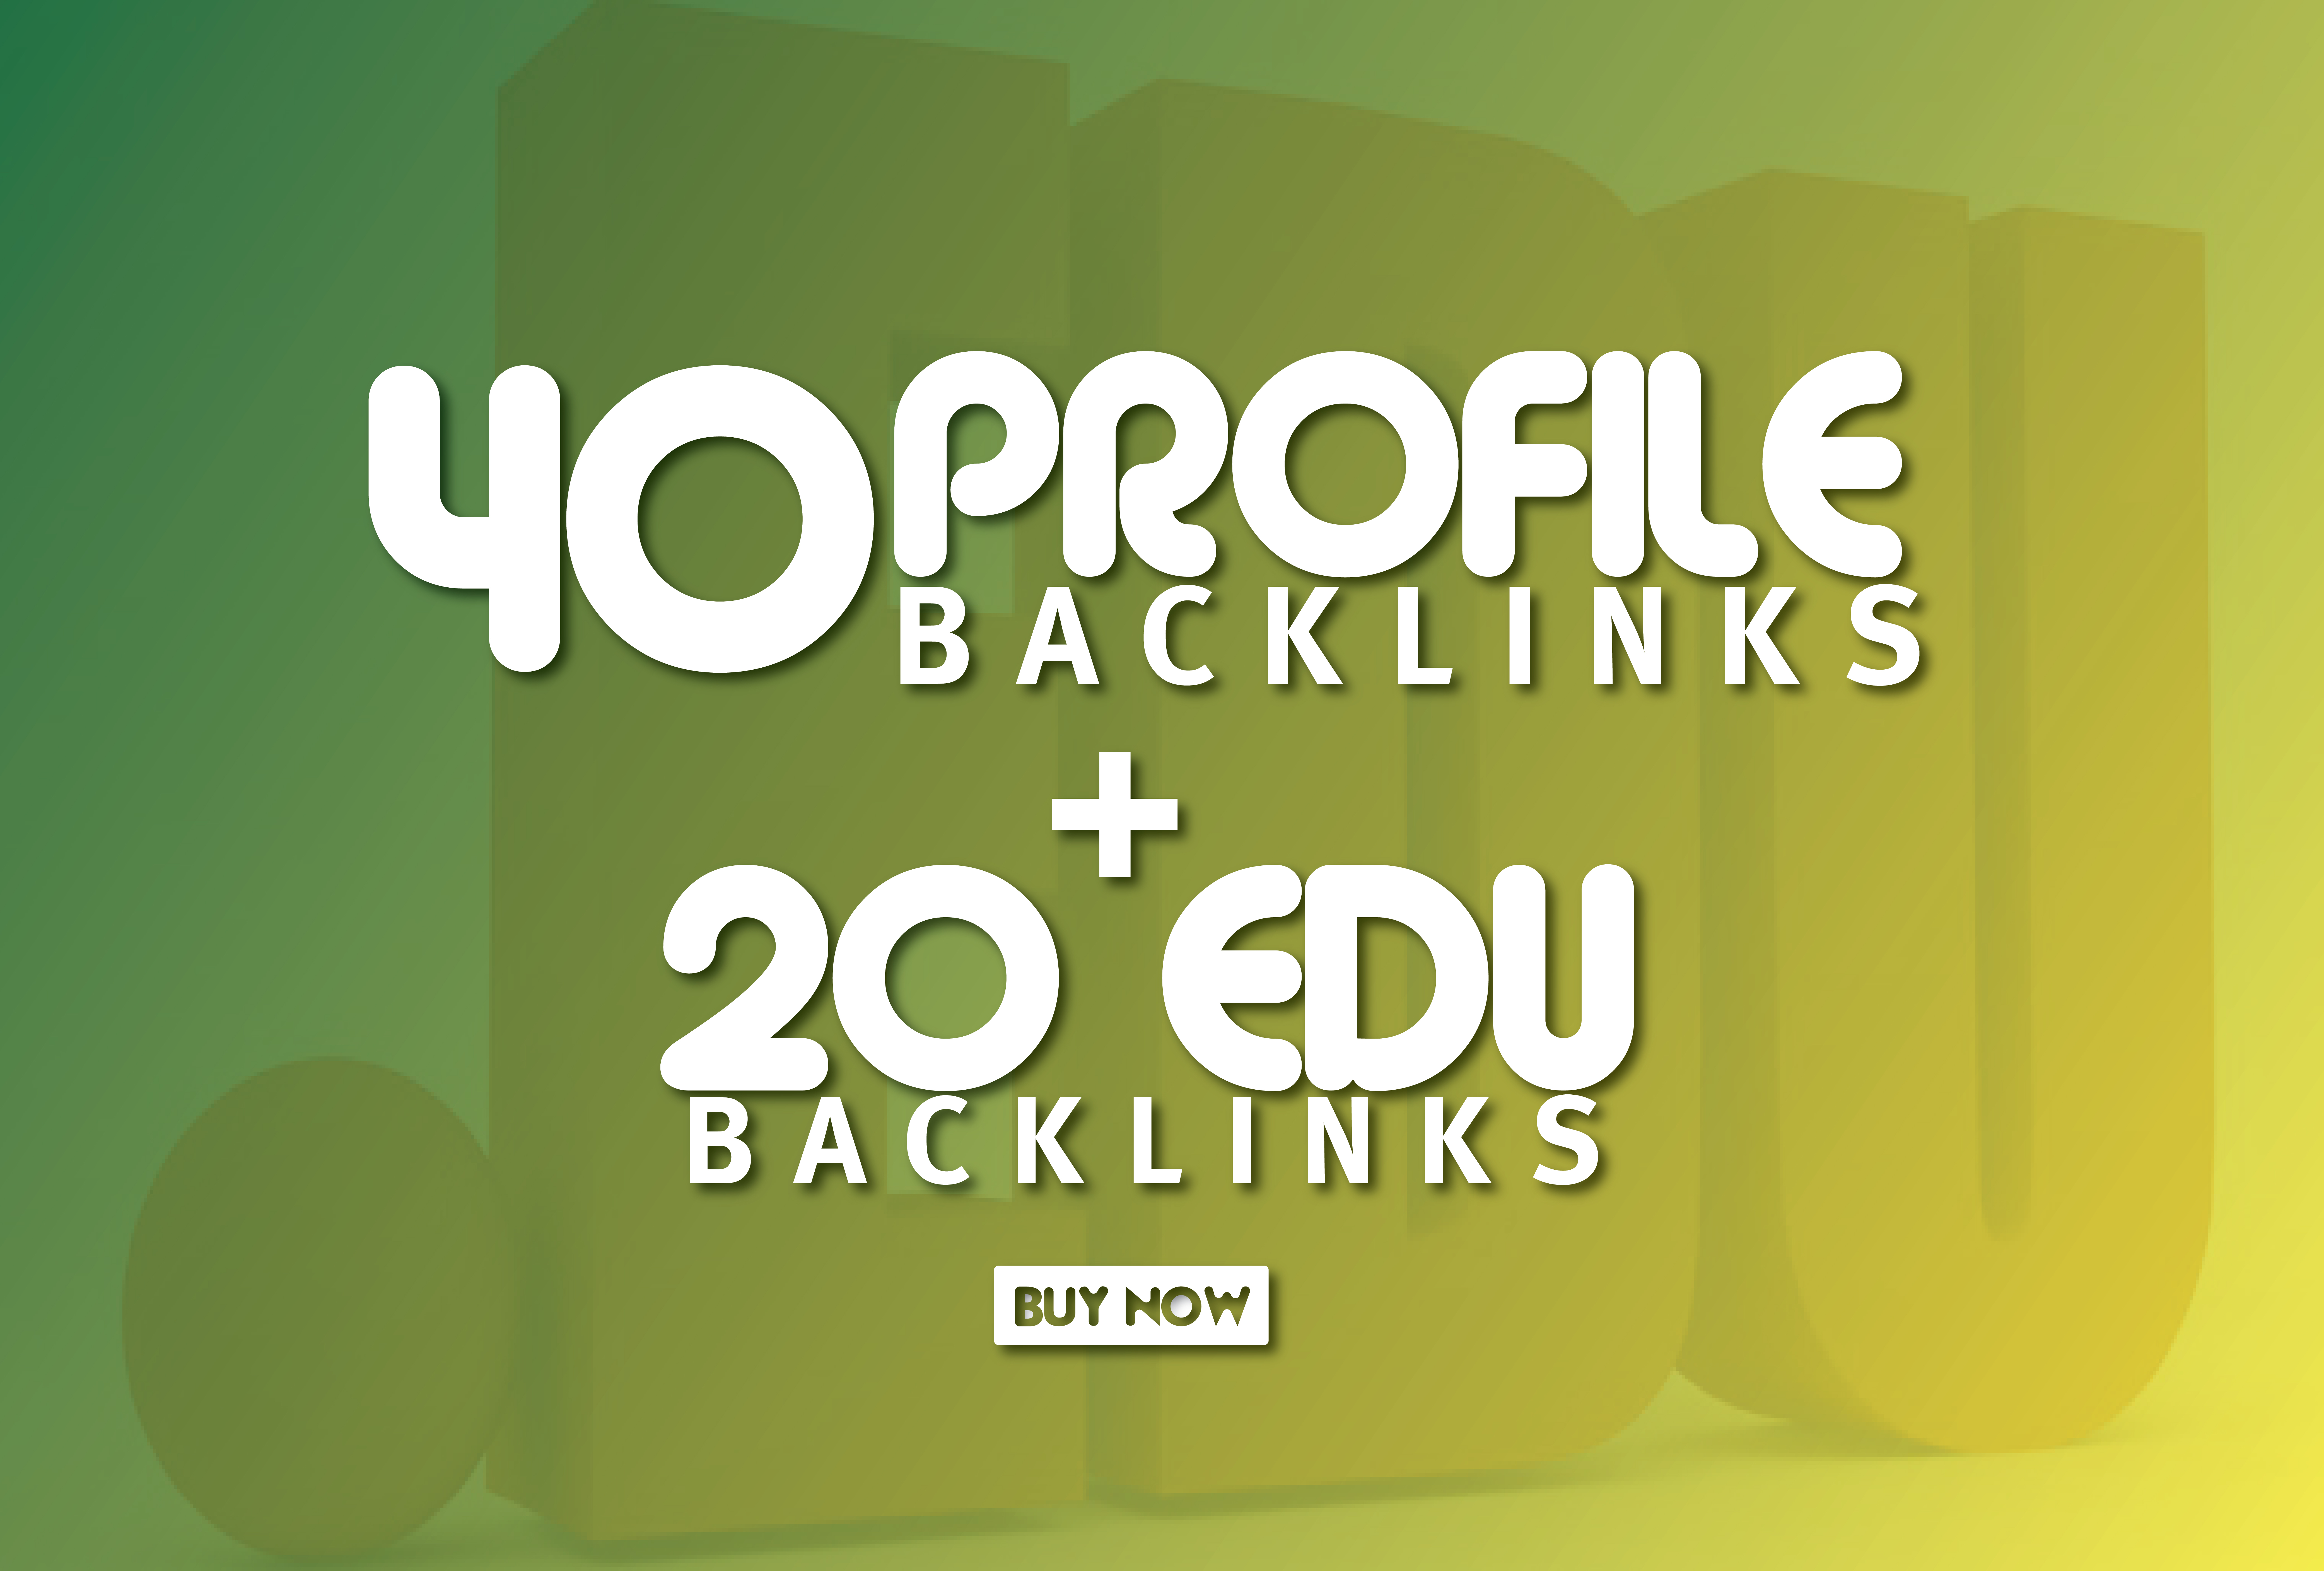 DA 70+ White Hat SEO Profile and EDU/GOV Permanent Backlinks just